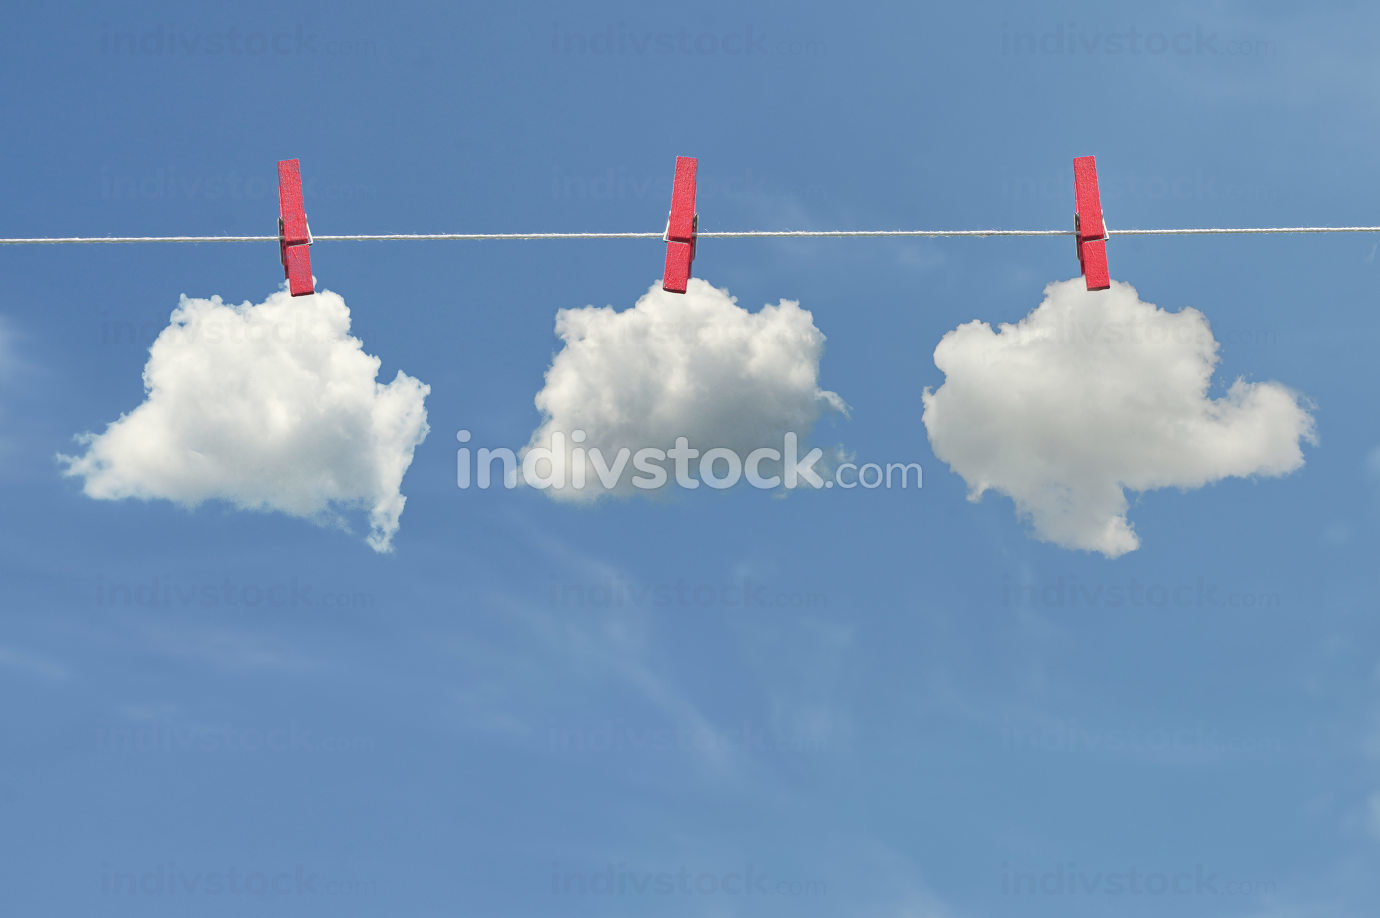 Clips for laundry hanging clouds on a string rope on blue sky